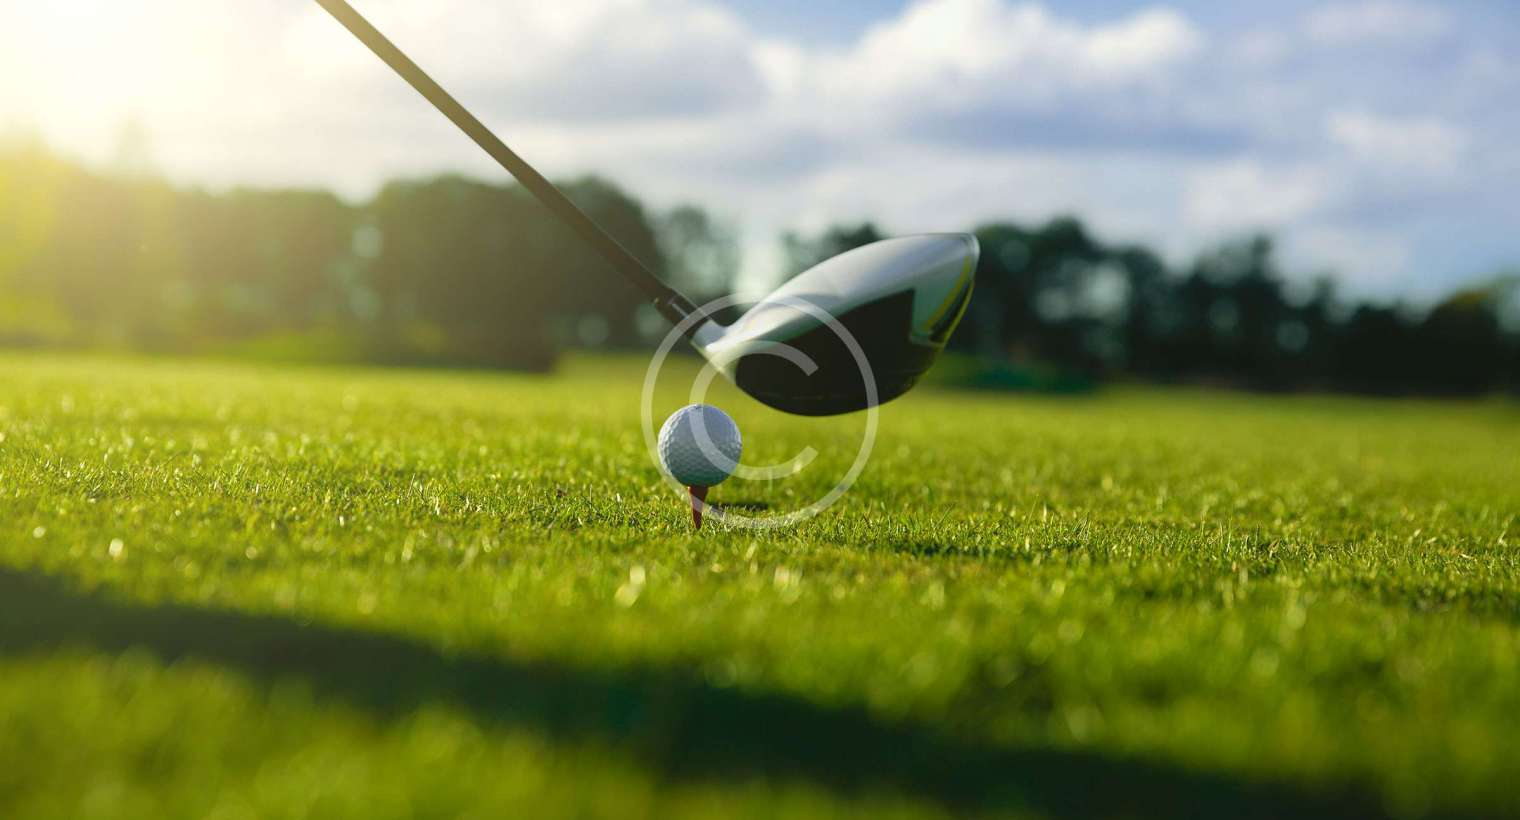 What's Your Favorite Season for Golf?